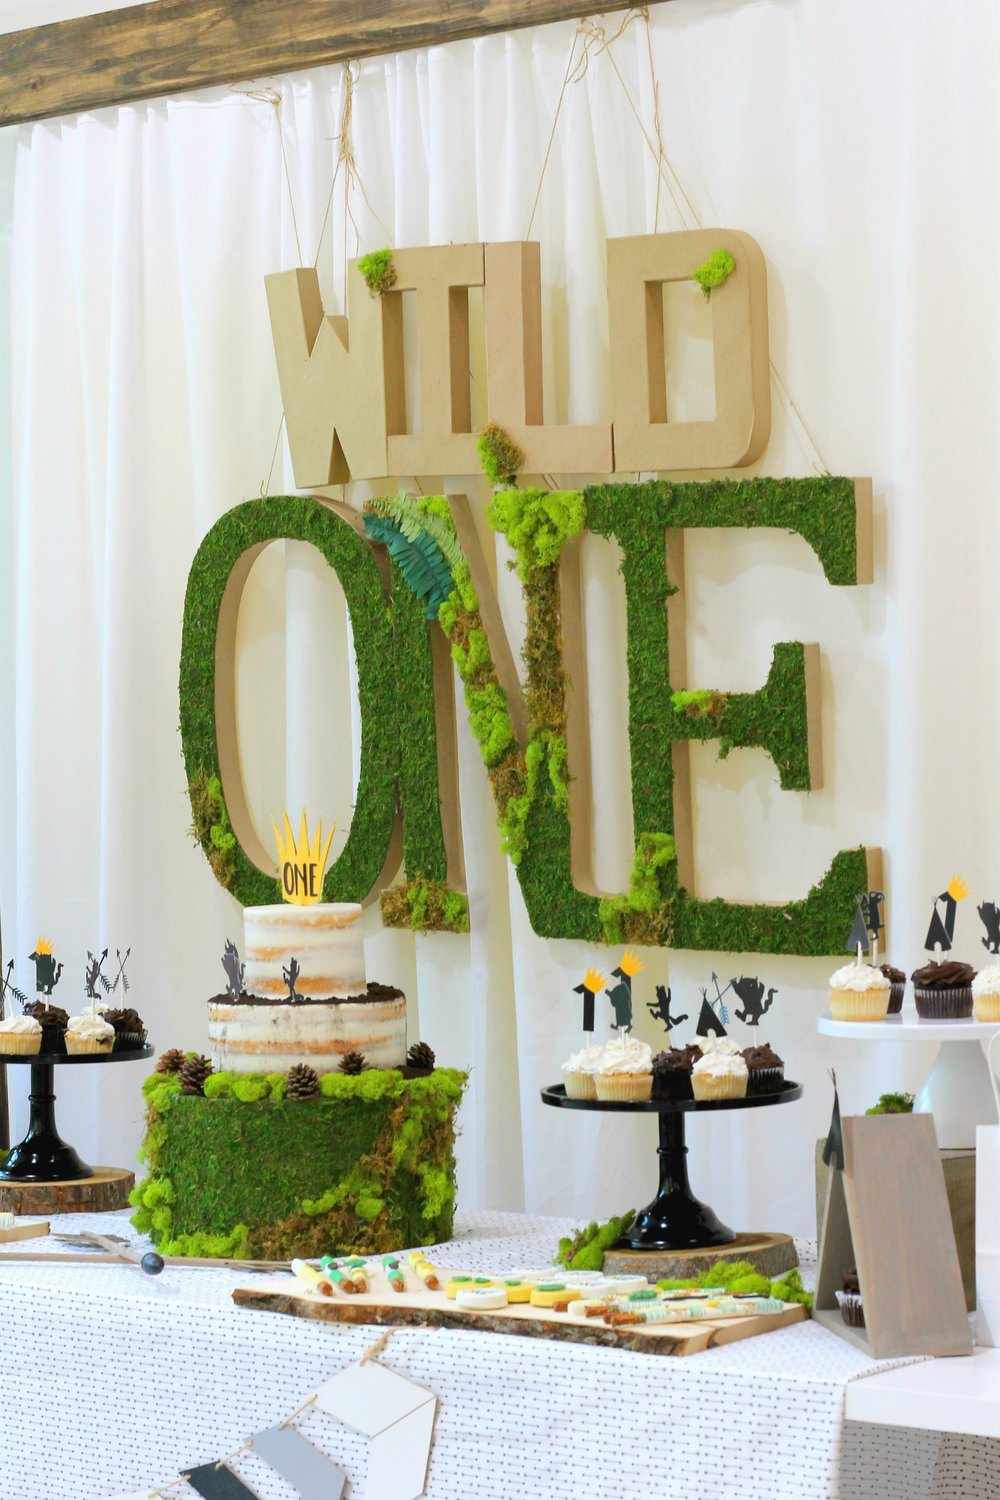 Wild One Party Table-let the wild rumpus start-wild one party ideas-wild one-wild one birthday party-www.sugarpartiesla.com.jpg